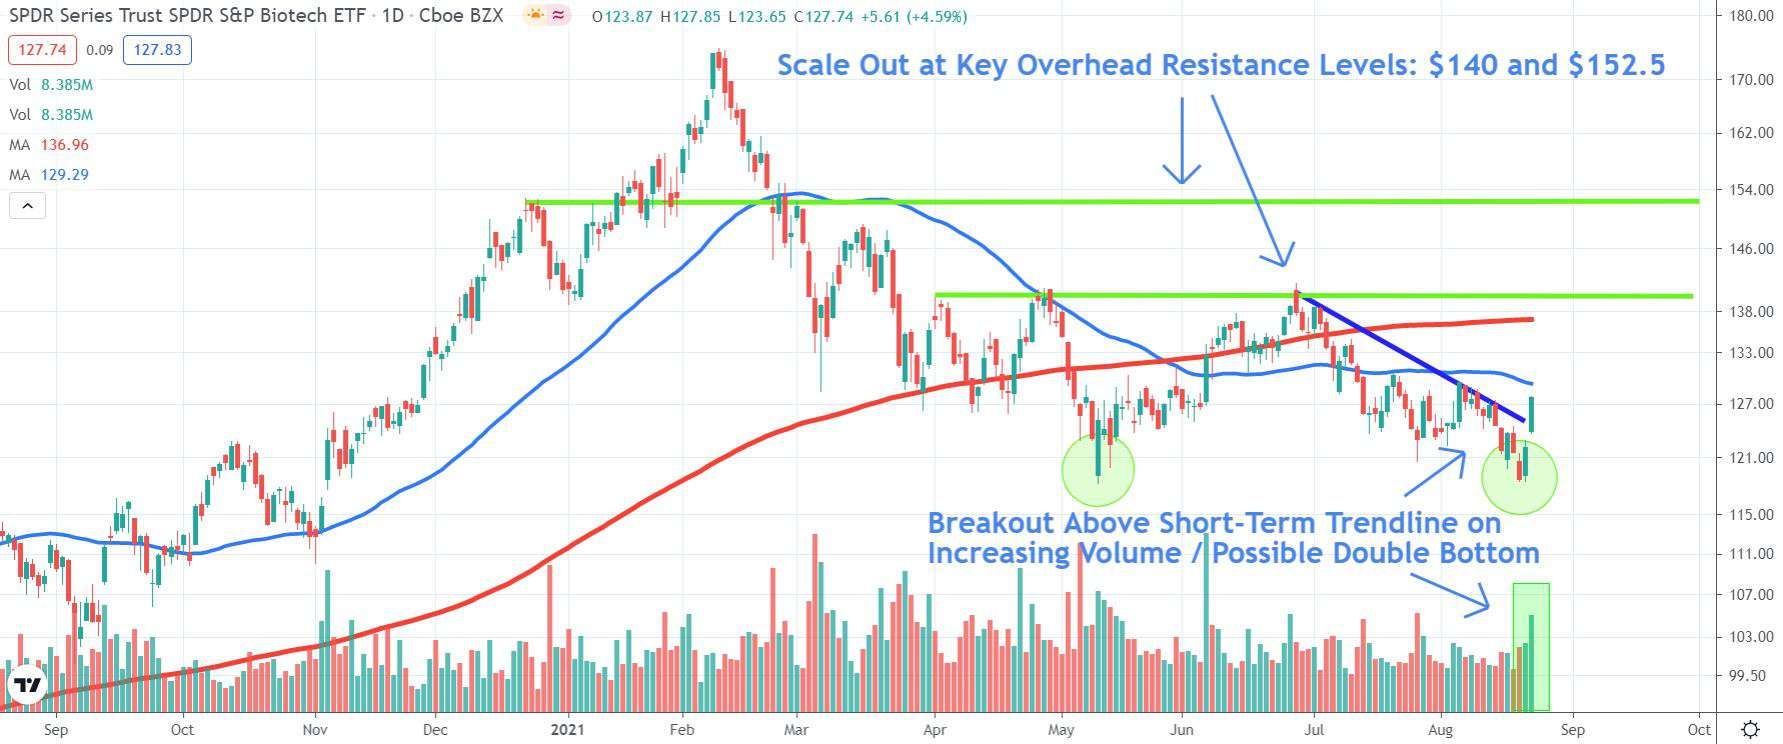 Chart depicting the share price of the SPDR S&P Biotech ETF (XBI)